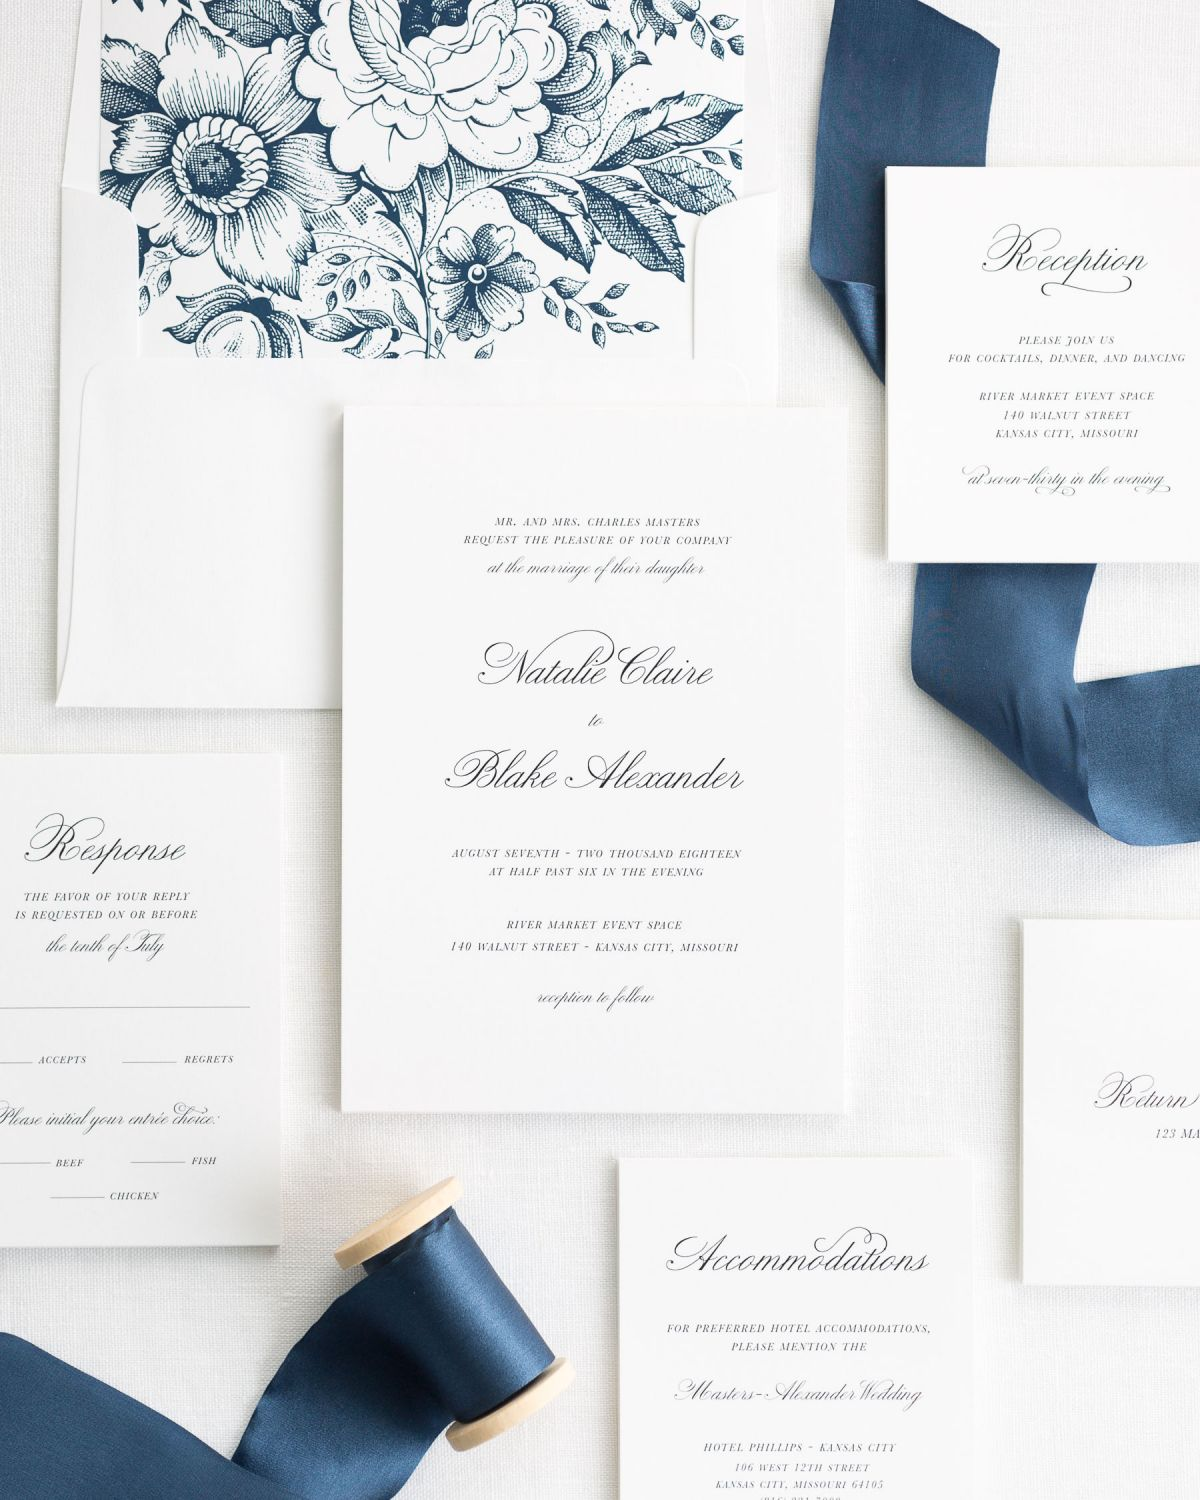 sapphire ribbon wedding invitations with a navy garden rose liner